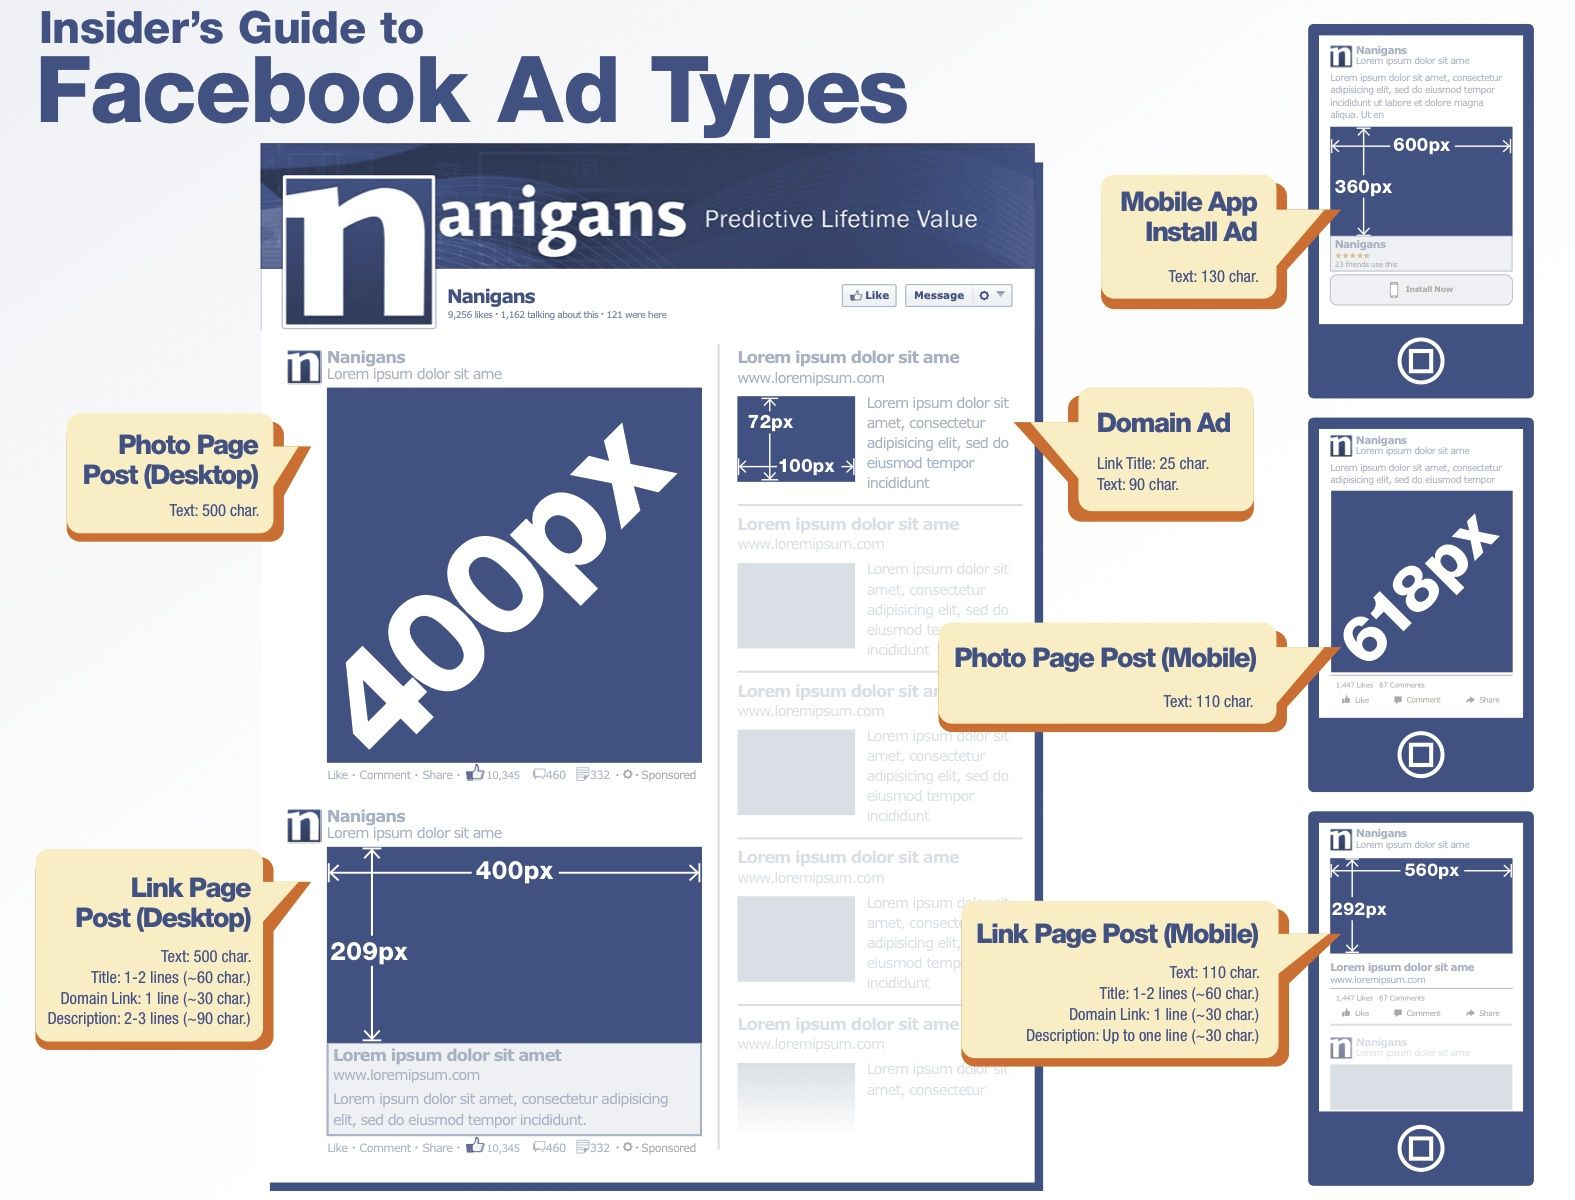 Insider's guide to #Facebook Ad Types --- #SocialMedia #Infographic